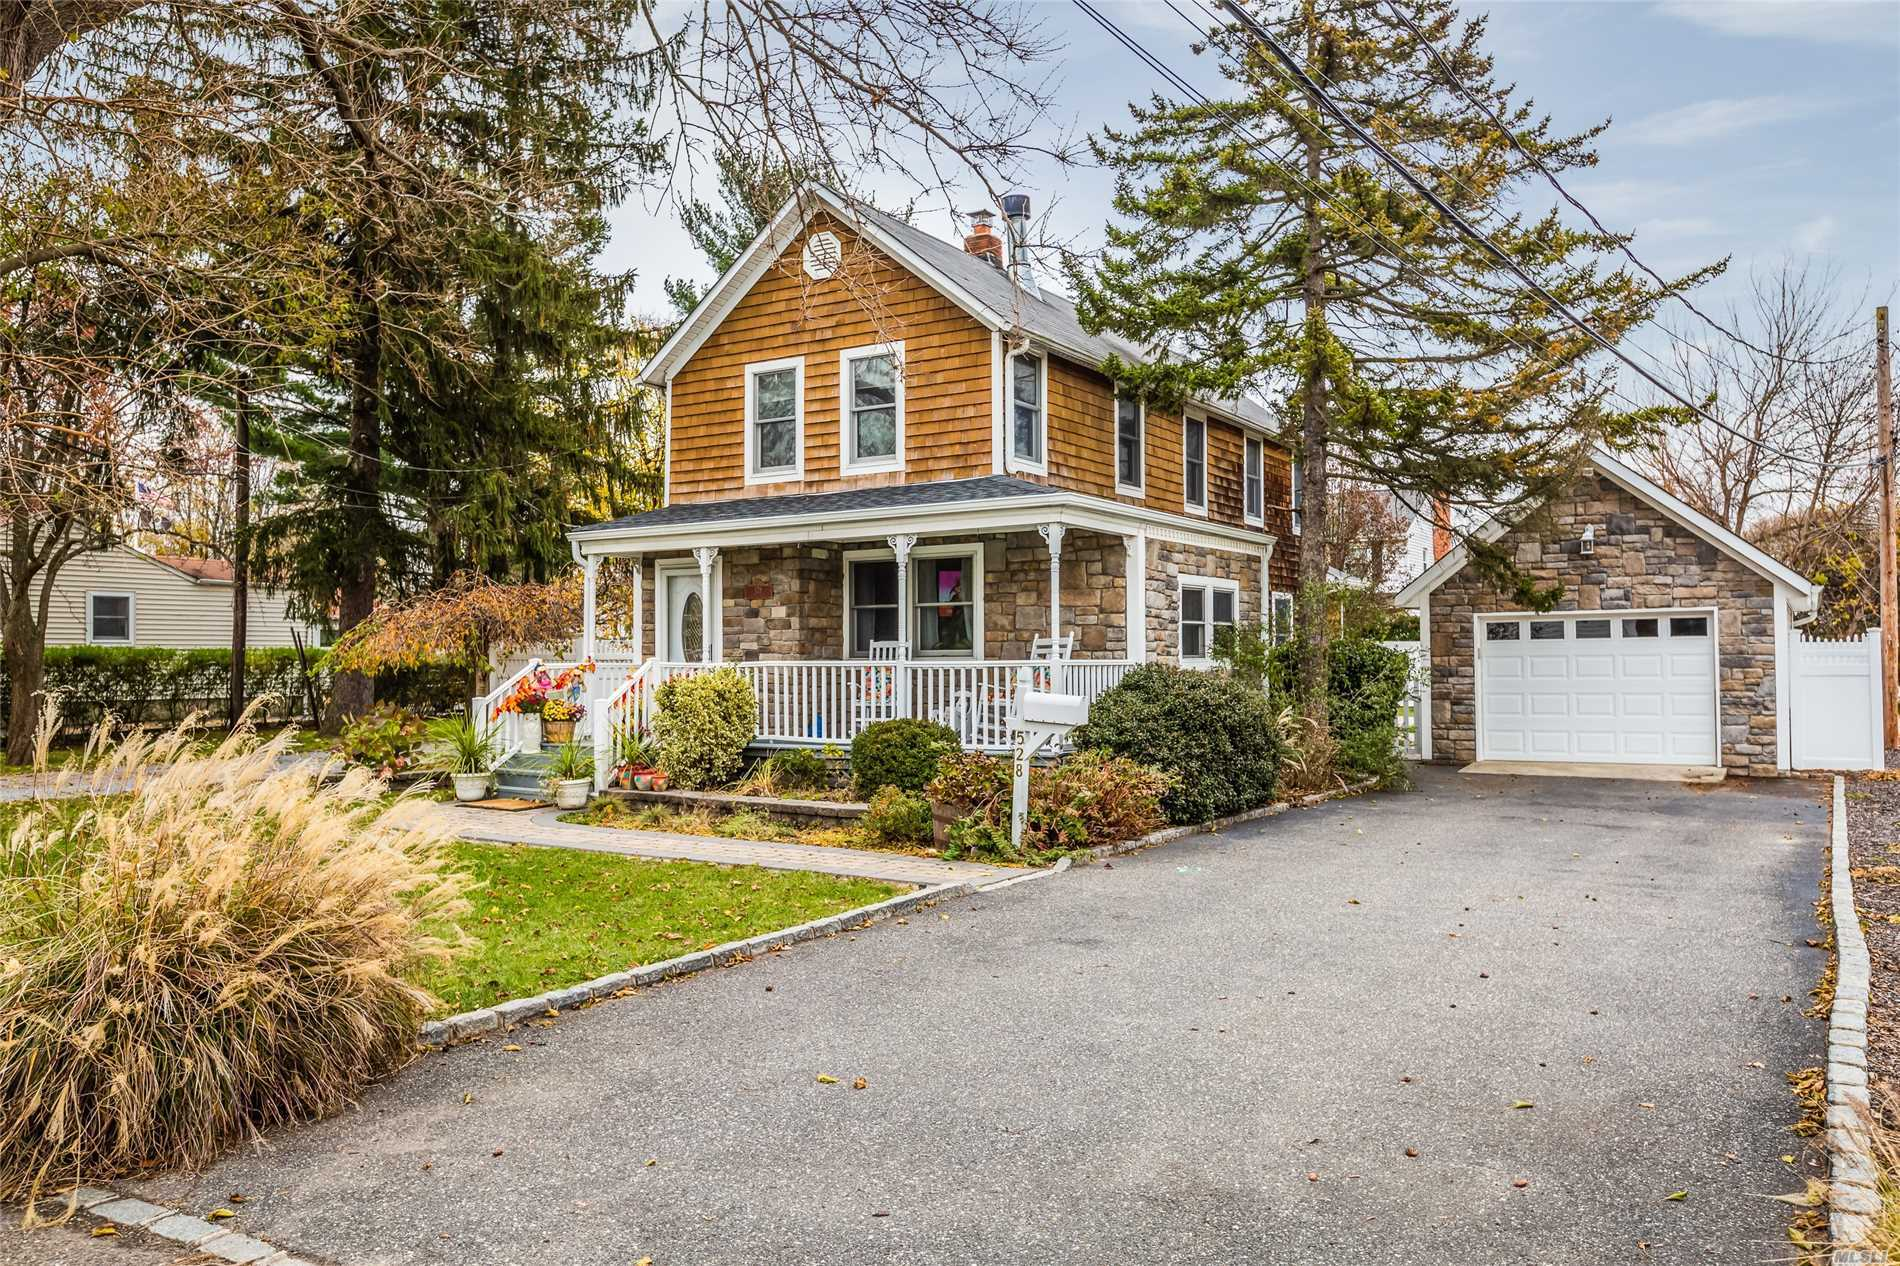 Photo of home for sale at 528 5th St, East Northport NY